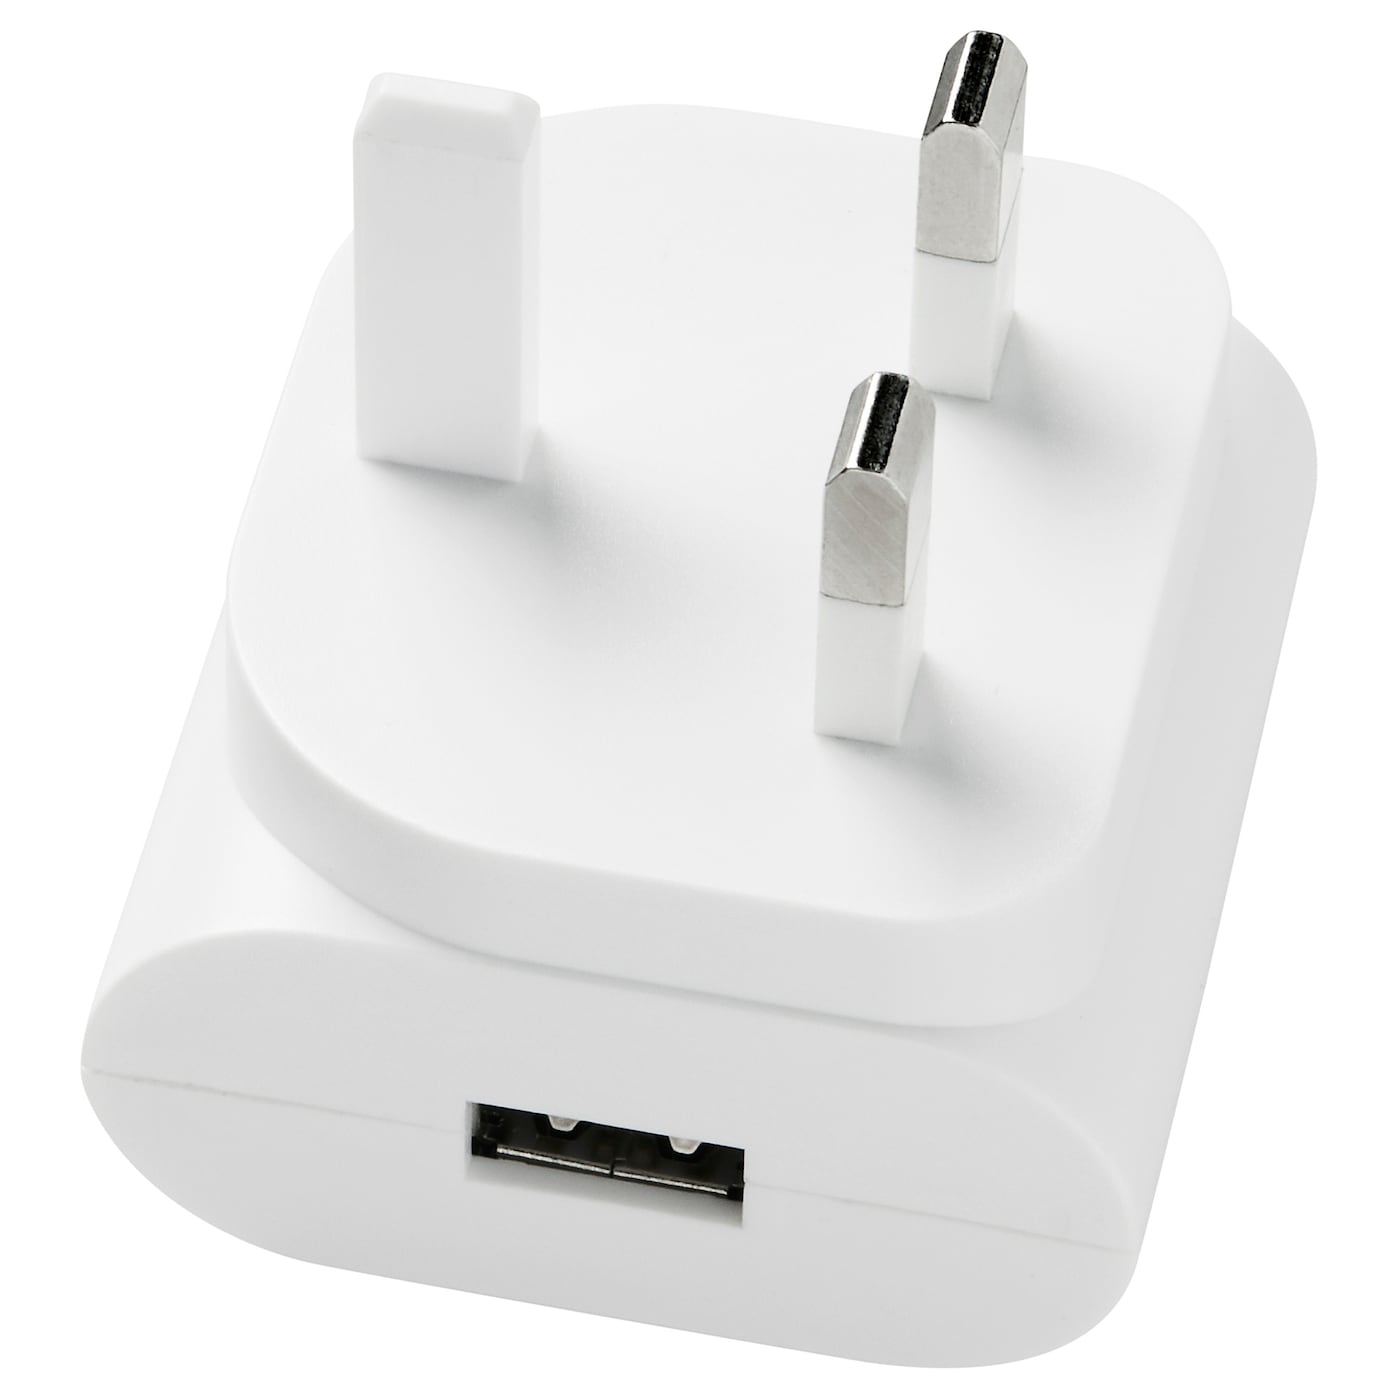 IKEA KOPPLA 1-port USB charger